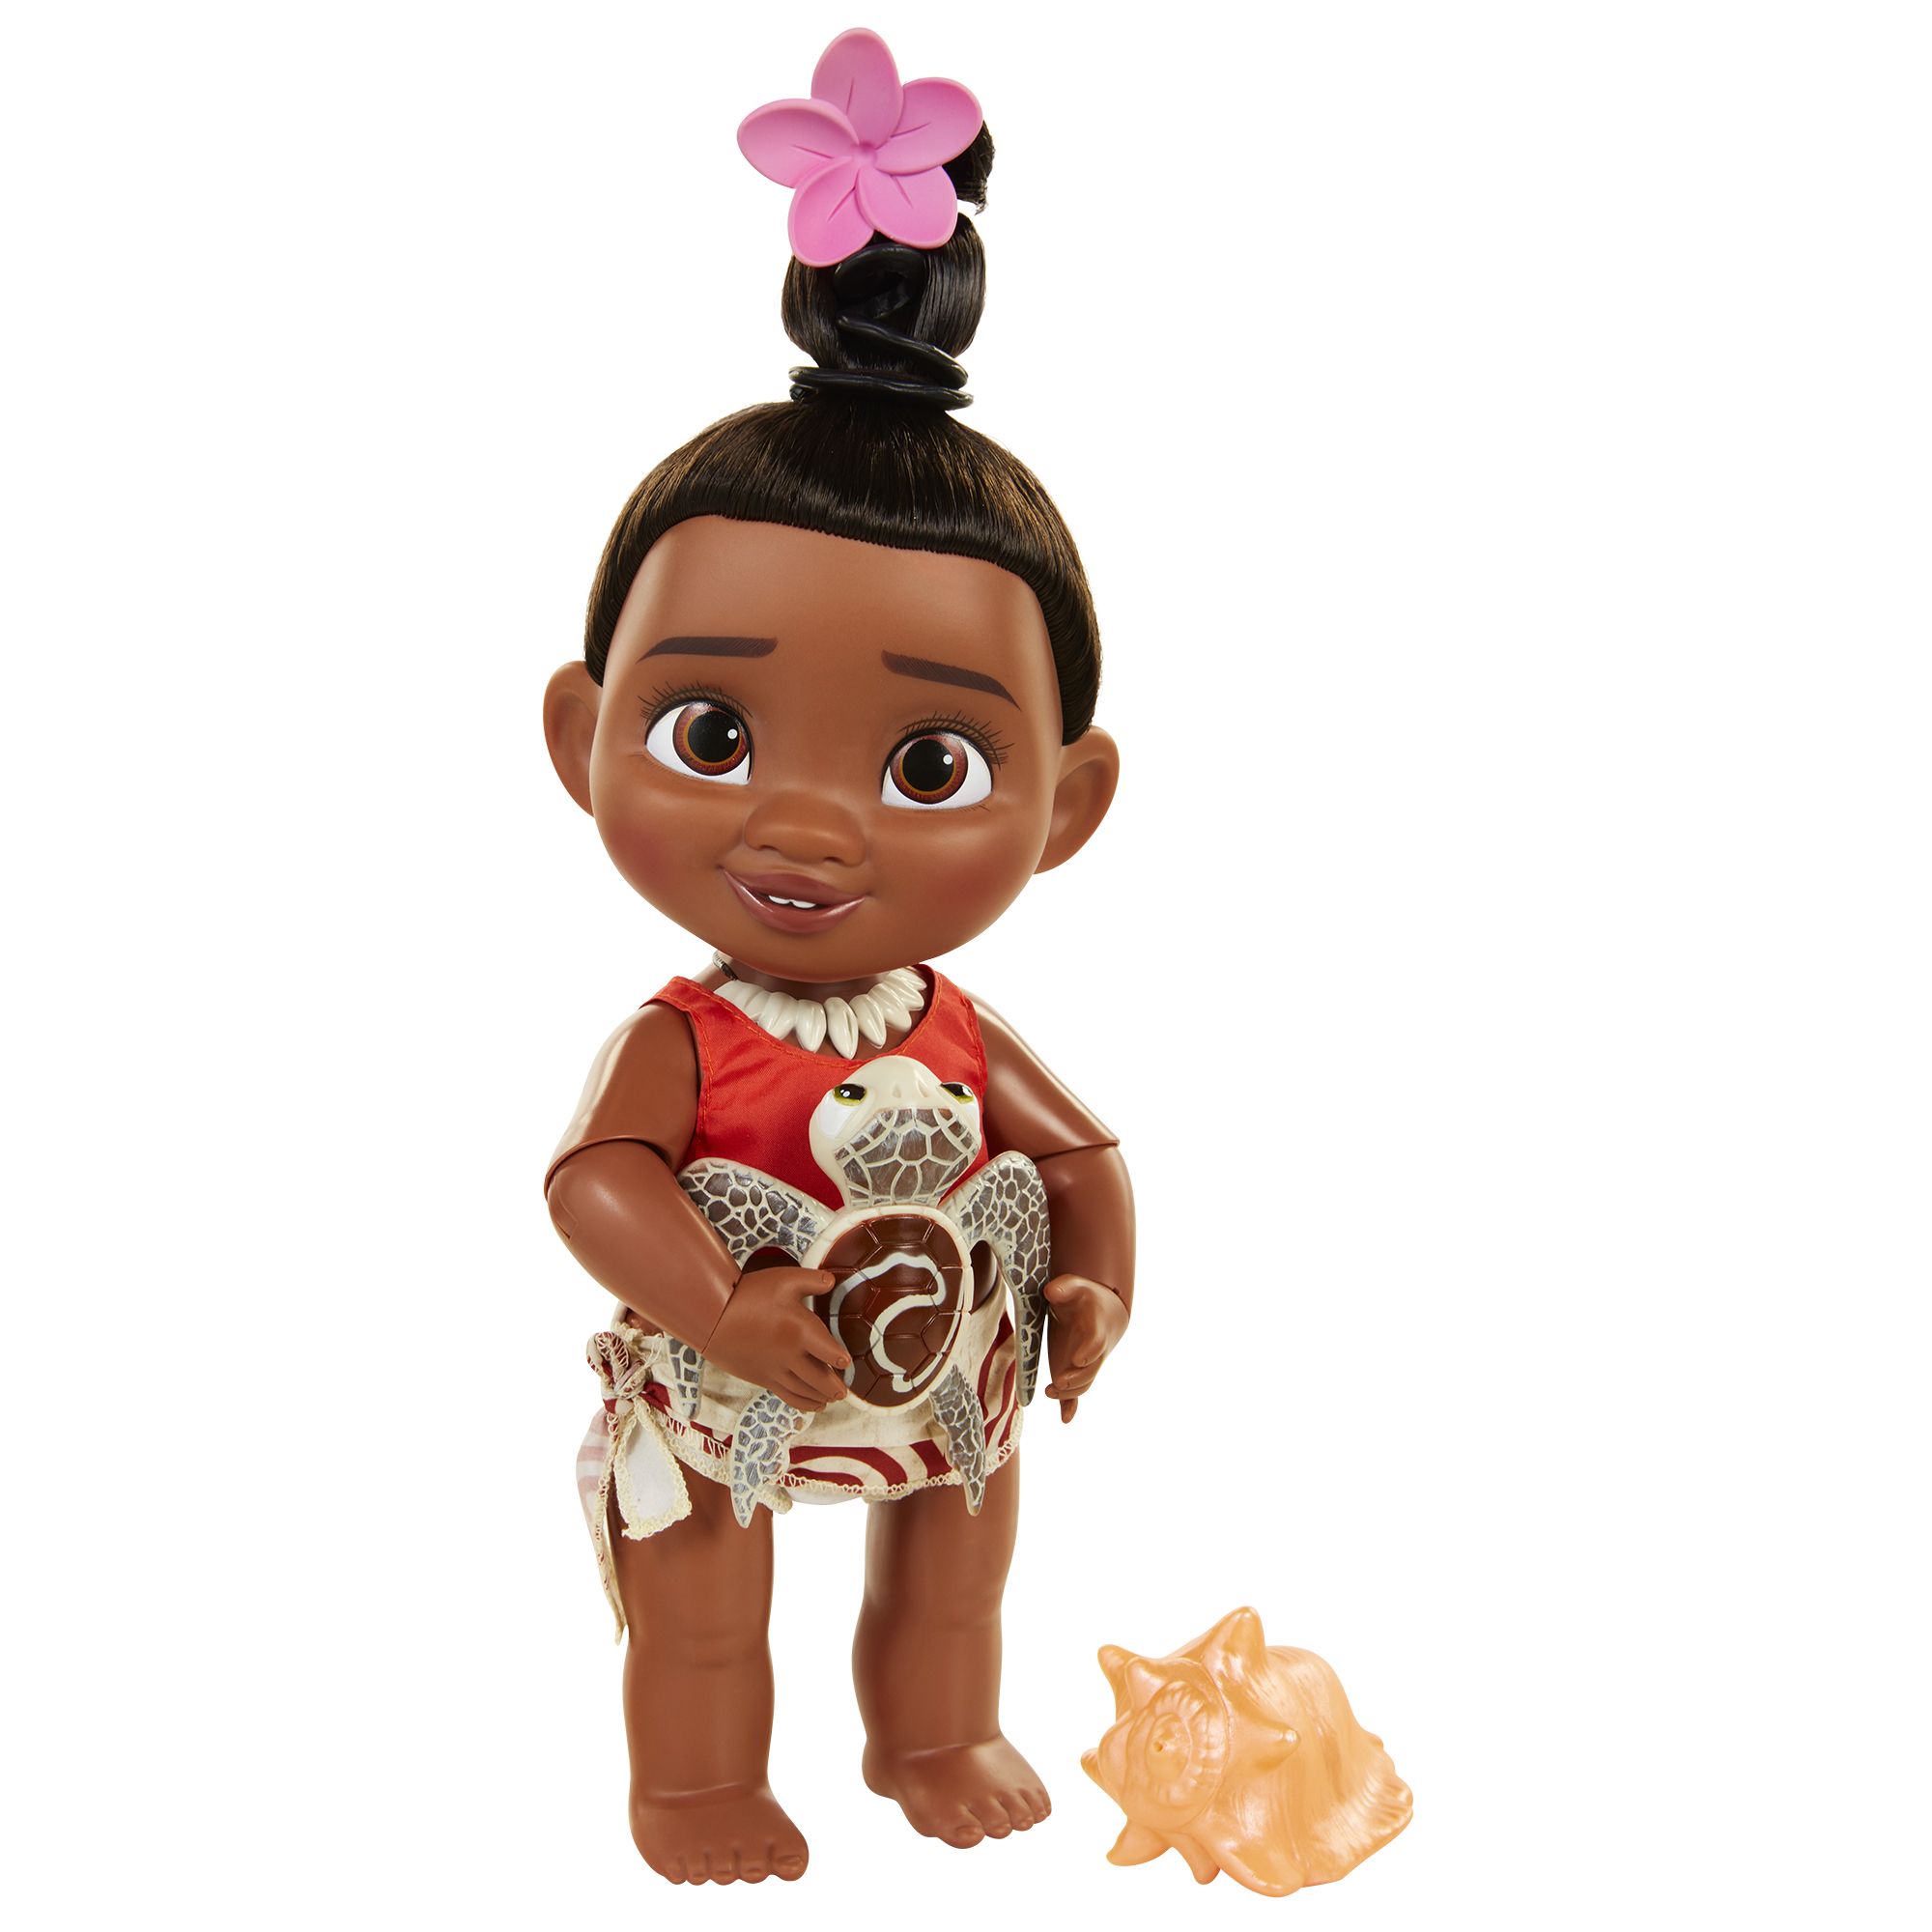 Giggling Baby Moana Disney